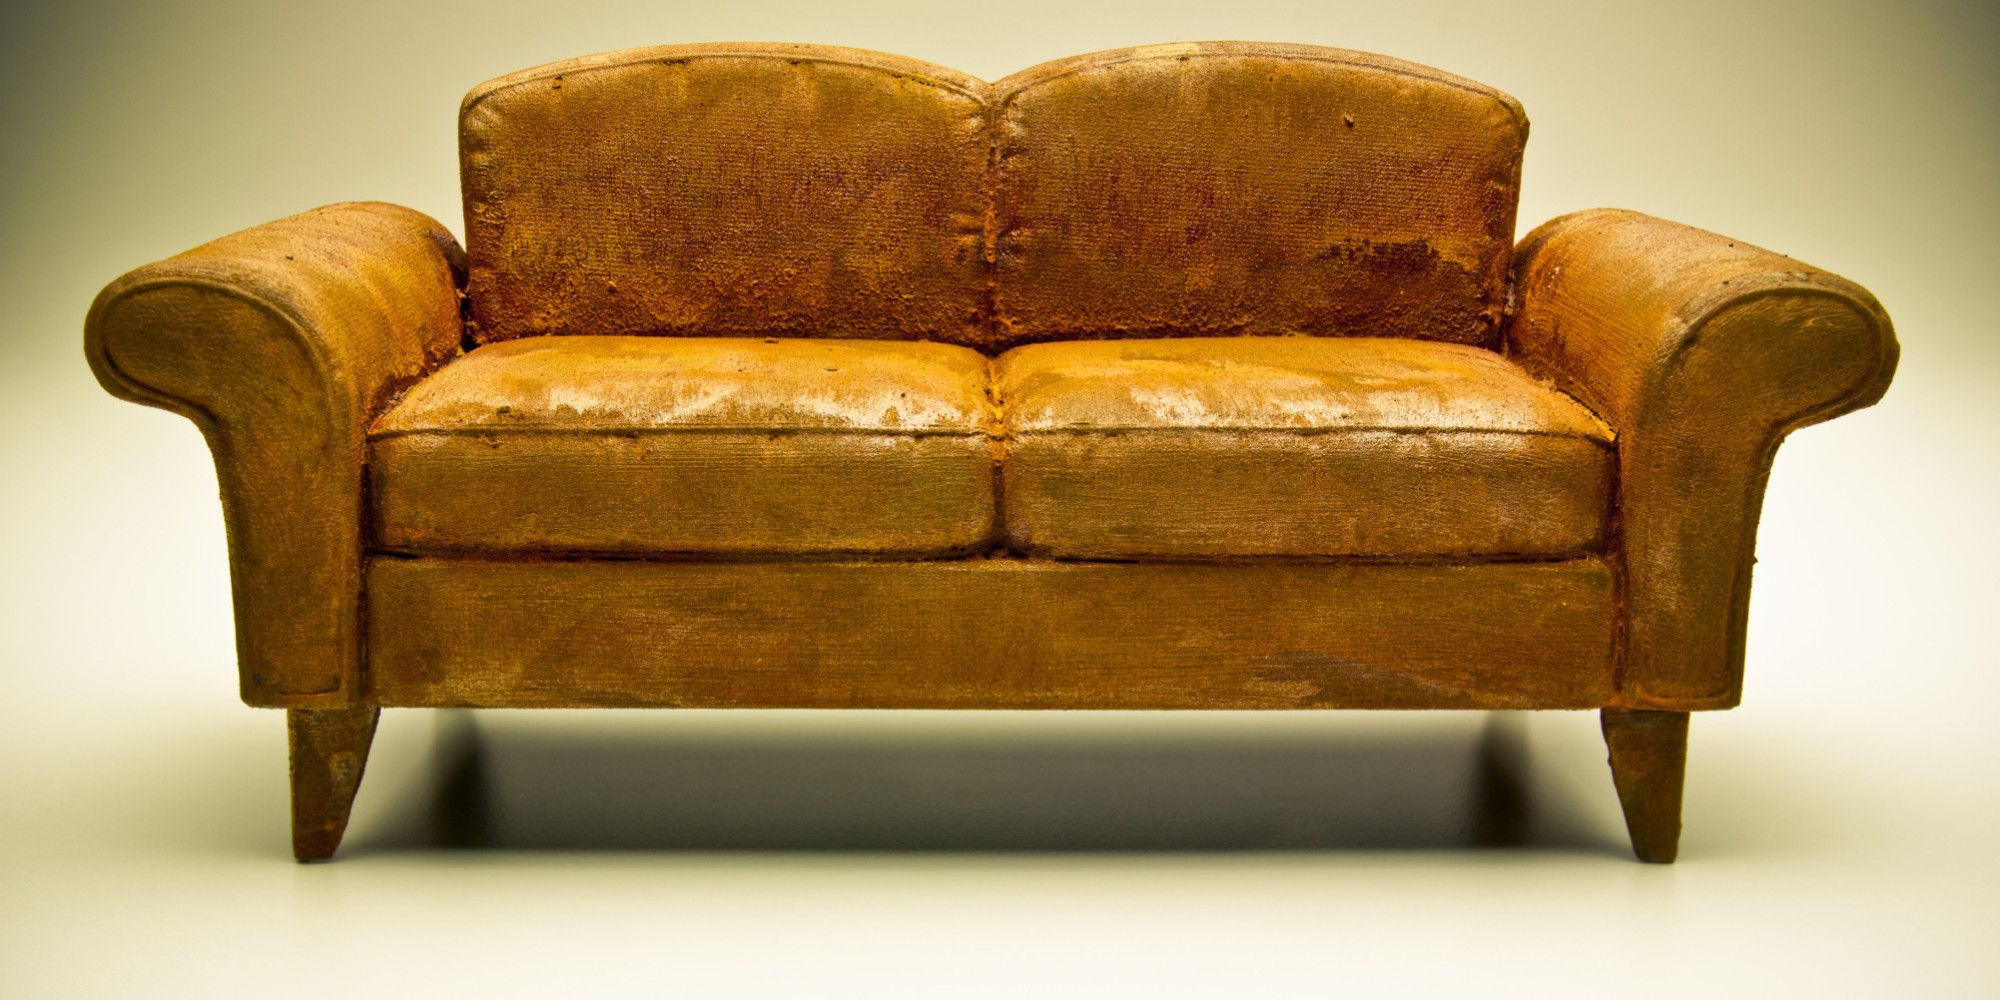 old couch Google Search テクスチャ Pinterest